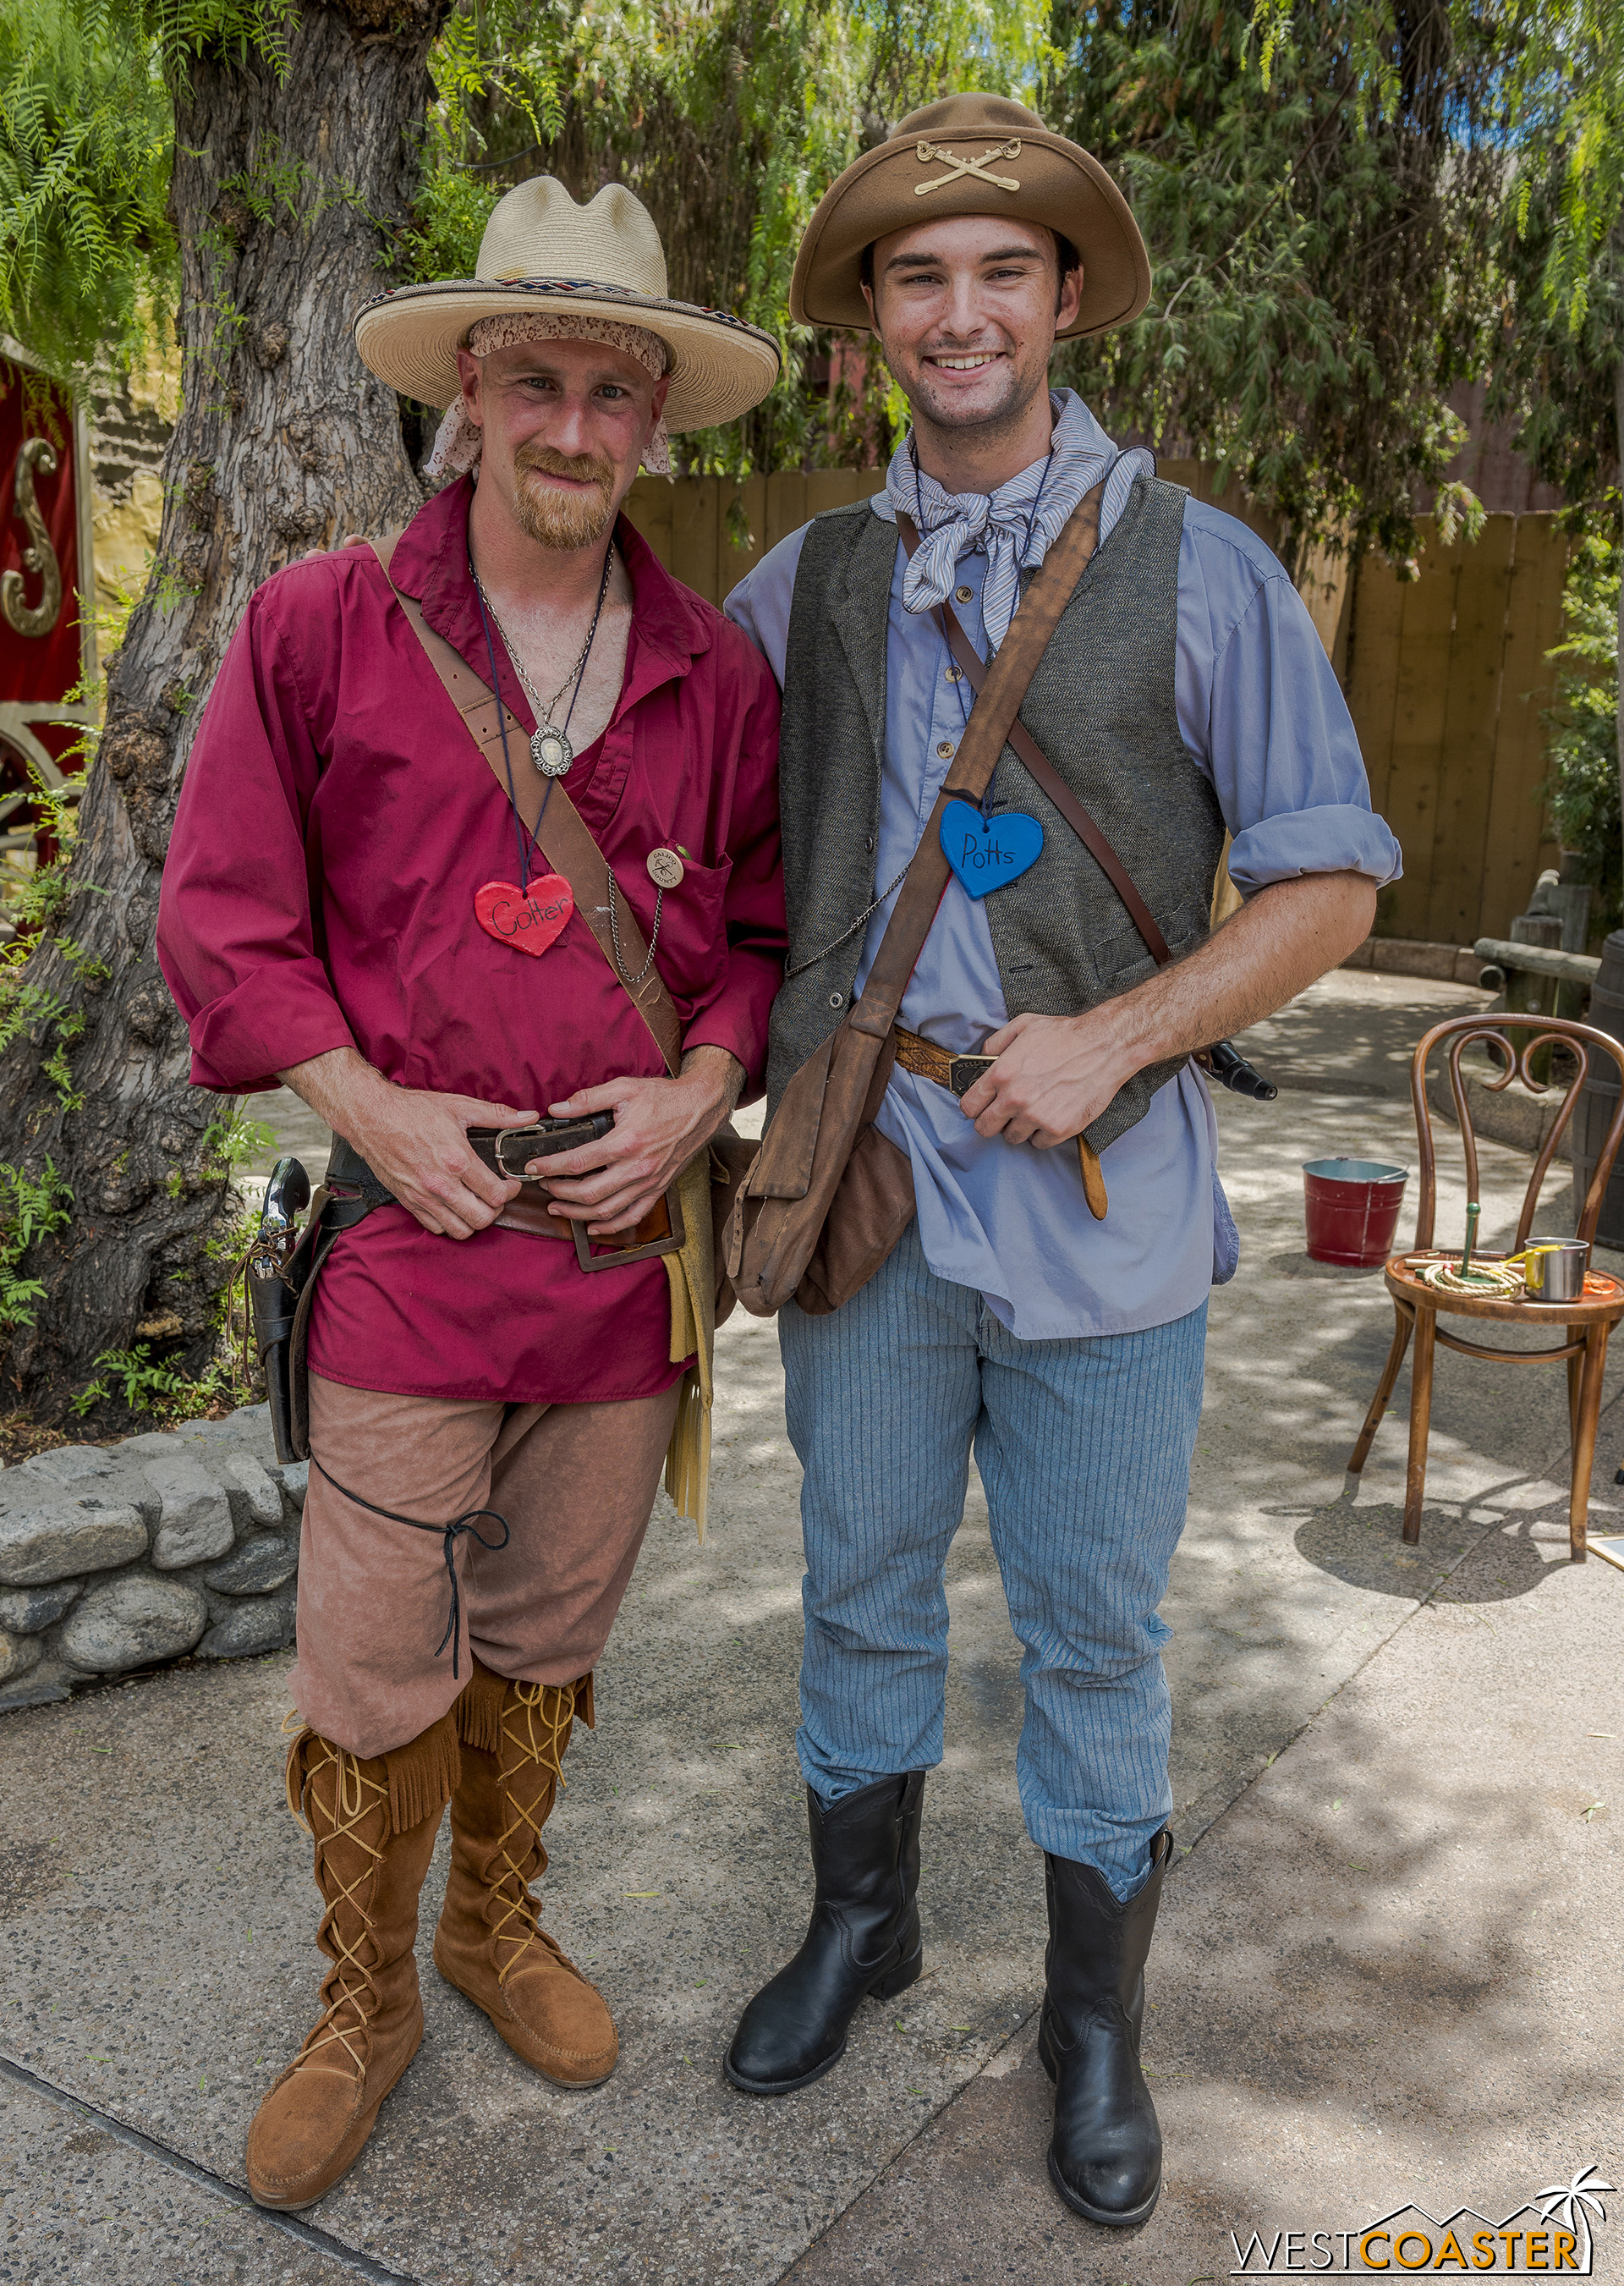 John Colter and John Potts are the explorers and adventurers who have been seeking fantastical beasts all summer.